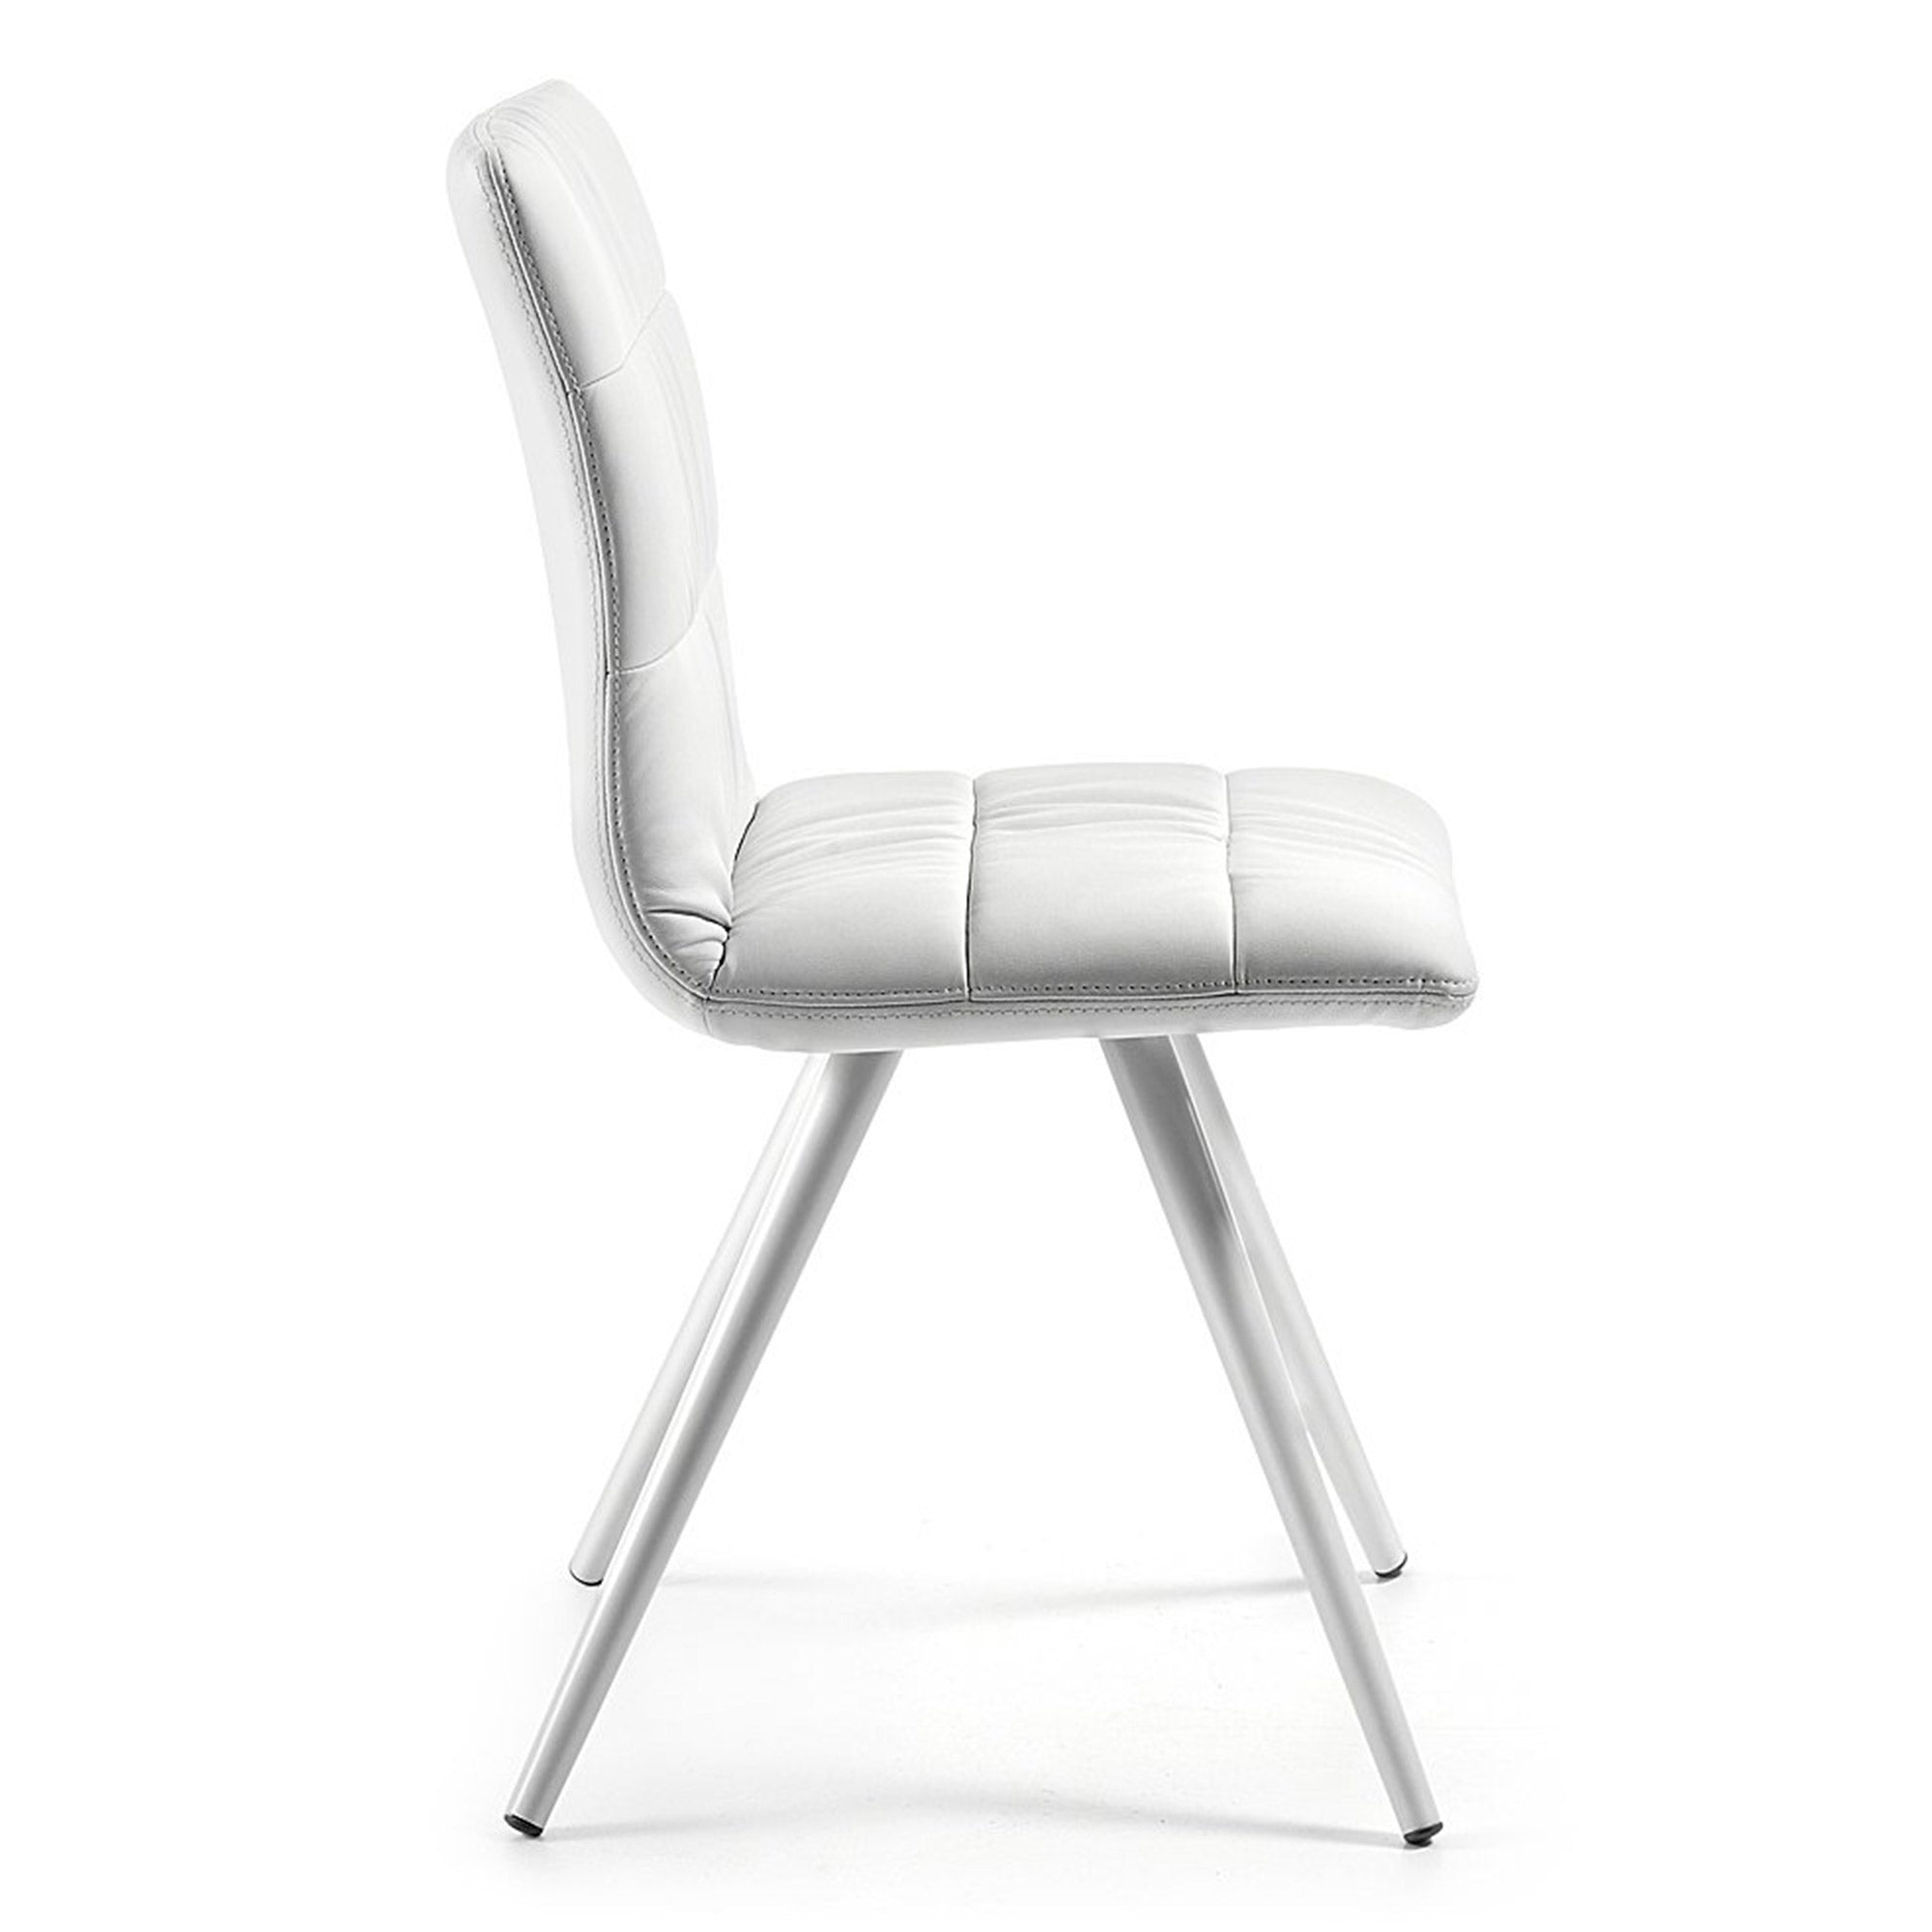 Aubrey Chair -  White PU with white legs, Chair - Home-Buy Interiors